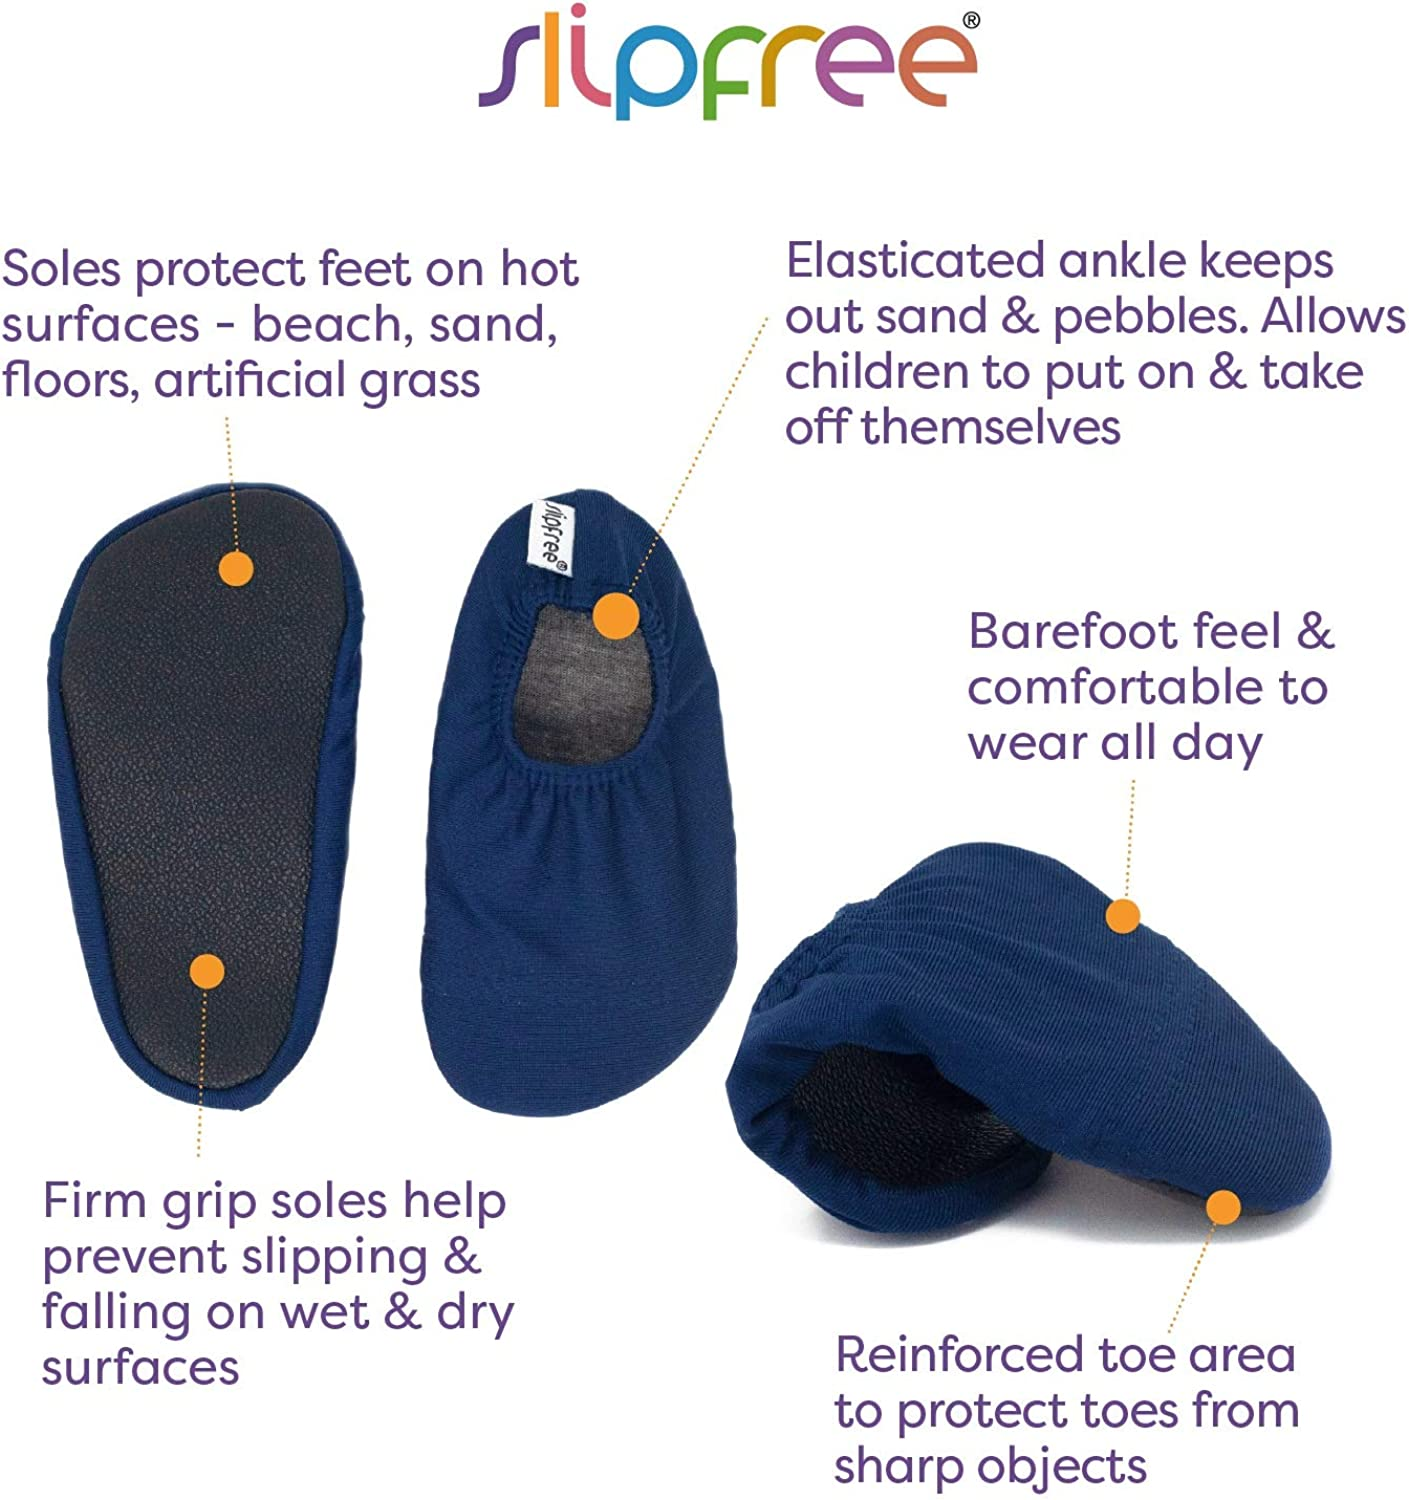 Boys Non-Slip UPF50+ Barefoot Swim Slipfree Pool and Home Navy Extra Small Water Shoes for Beach